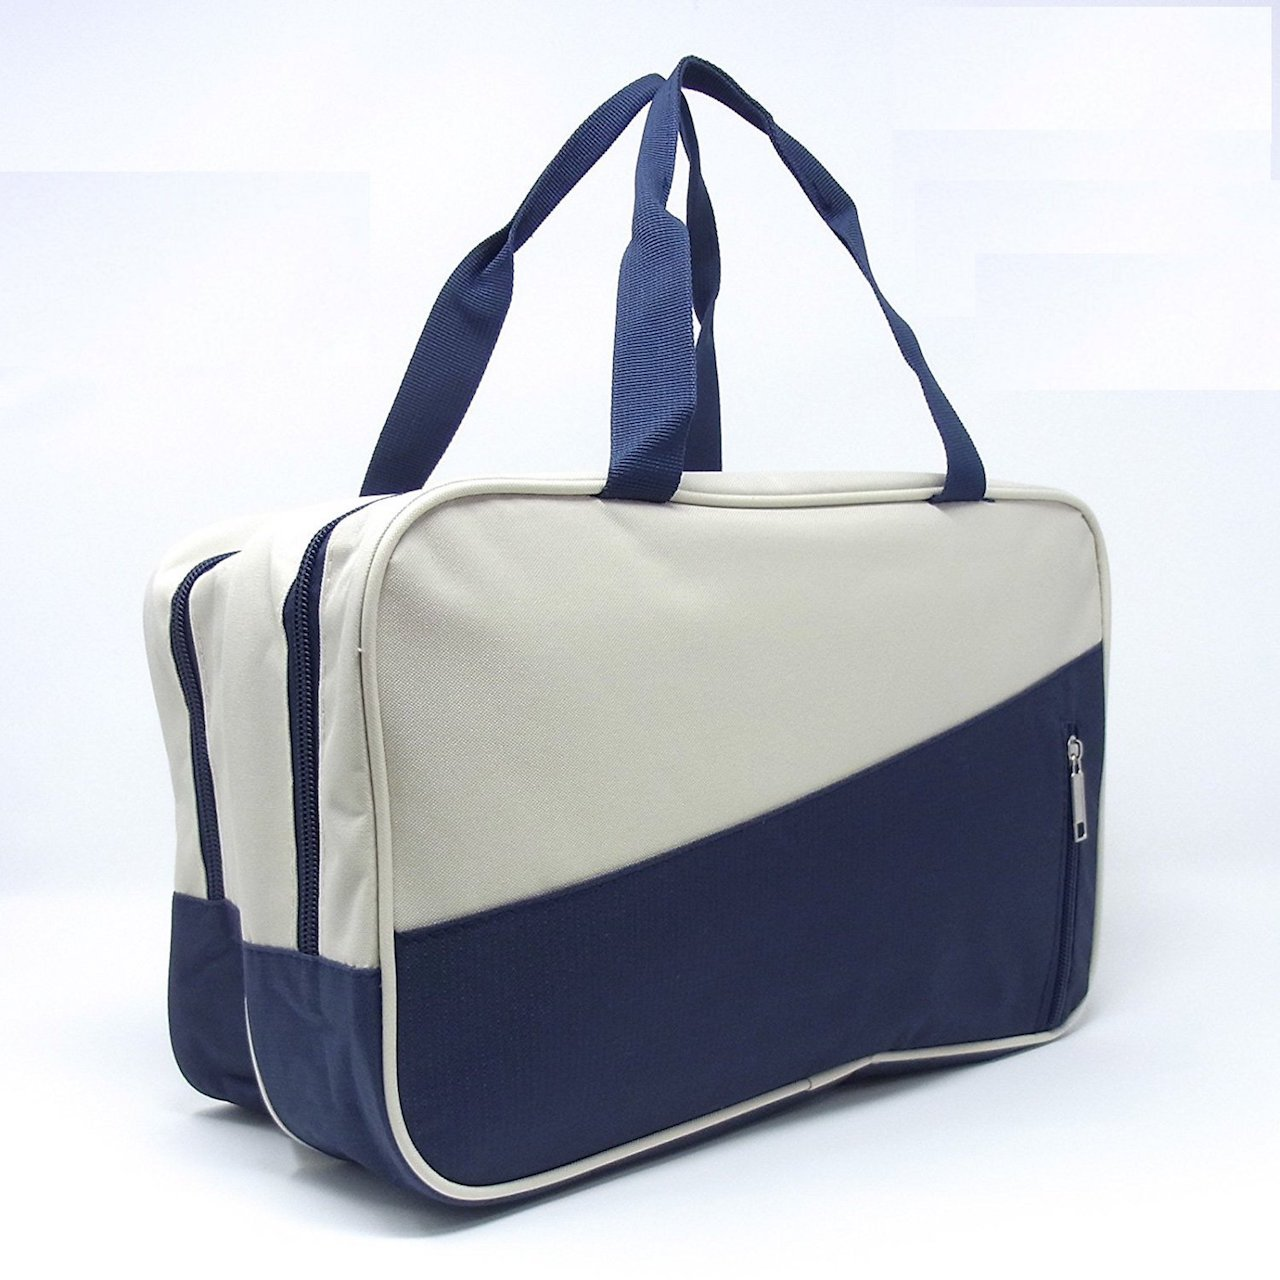 ts-store Swim Bag Waterproof Sports Bag Beach Wet Dry Gym Tote Pool Swimming Sports Fitness Running Fishing Camp Outdoor